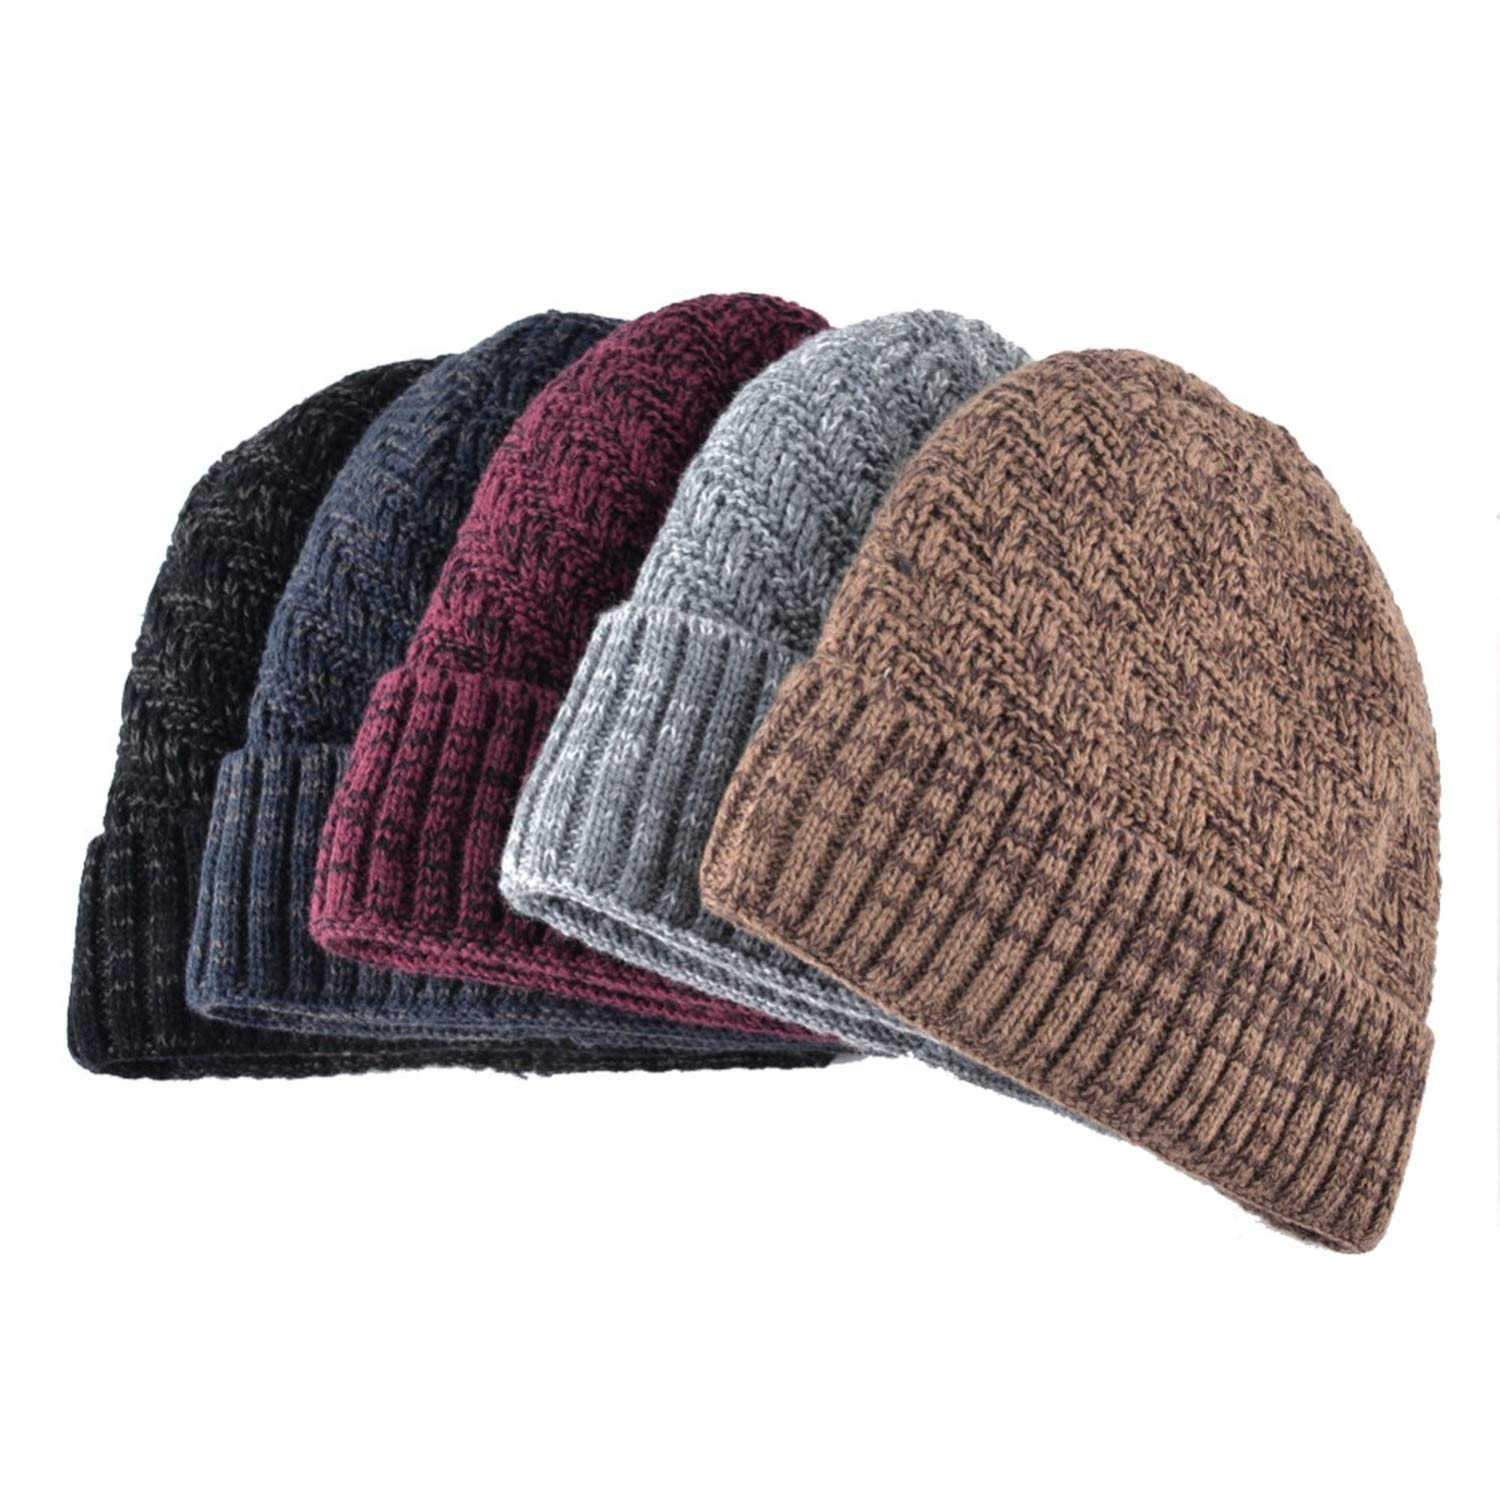 Moktasp Winter Beanie Hat Cap for Men and Women Knitted Velvet Skullies Solid Color hat Flanging Ski Caps Warm Hats